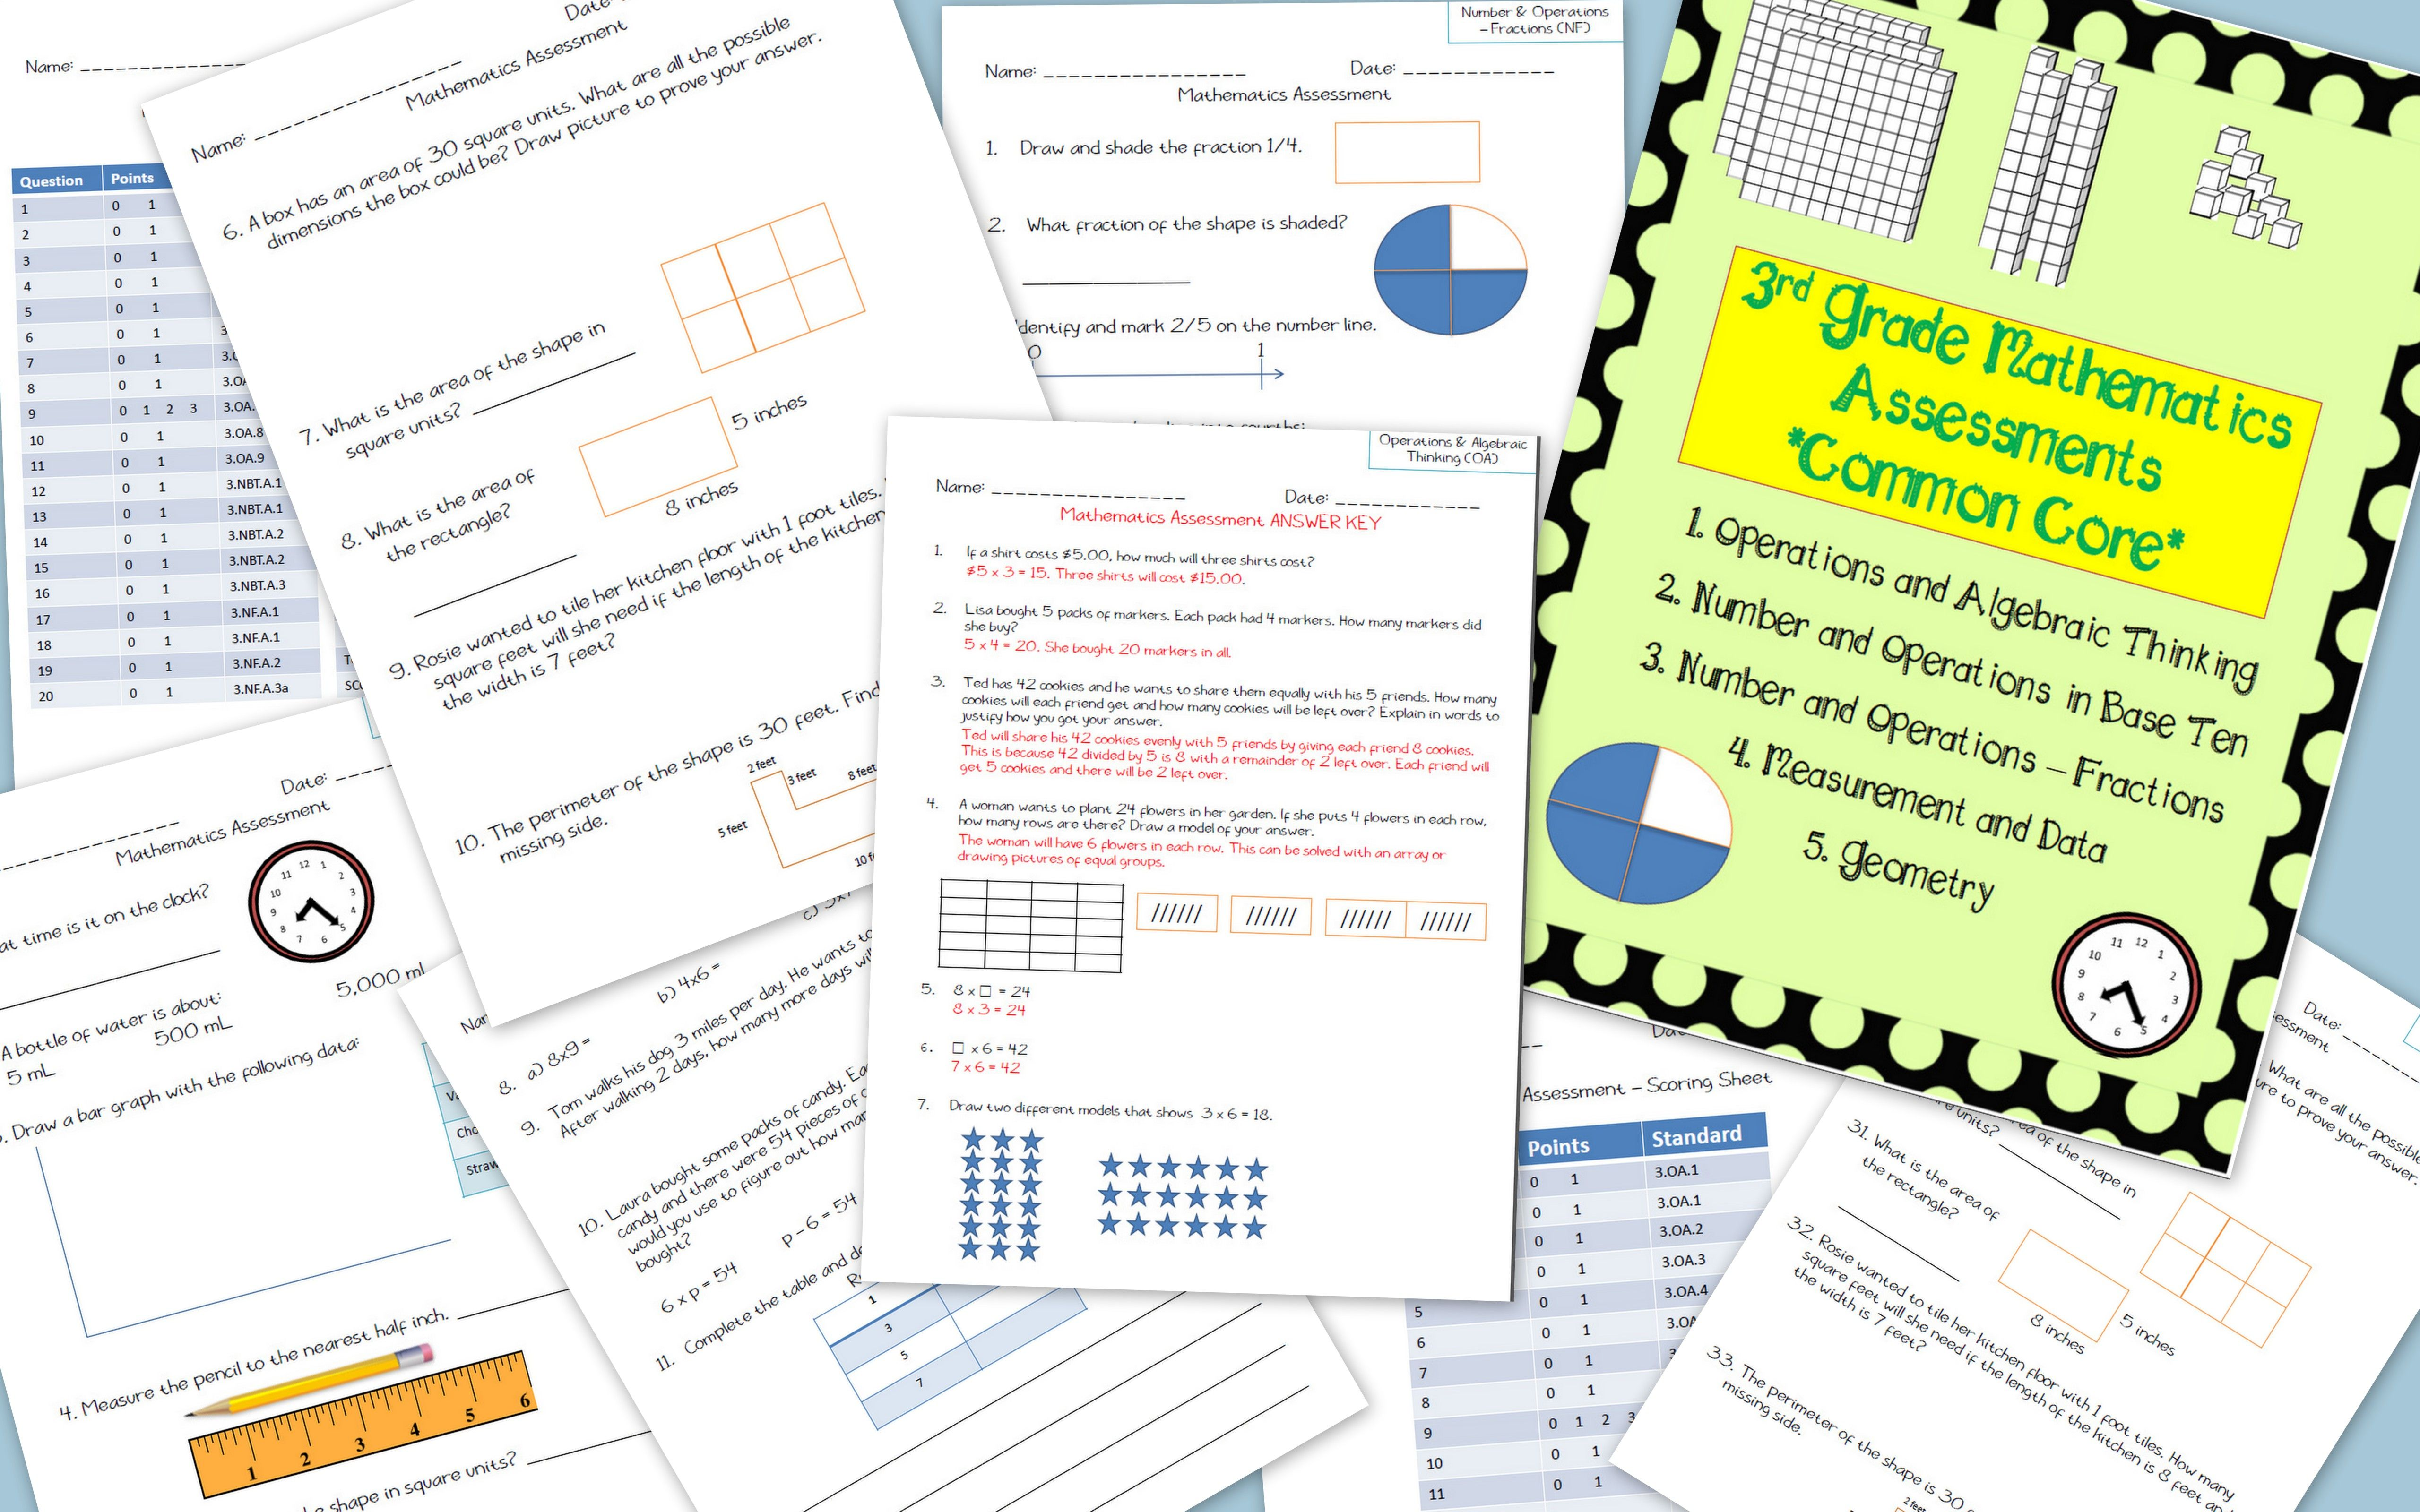 3rd Grade Math Assessments For Common Core